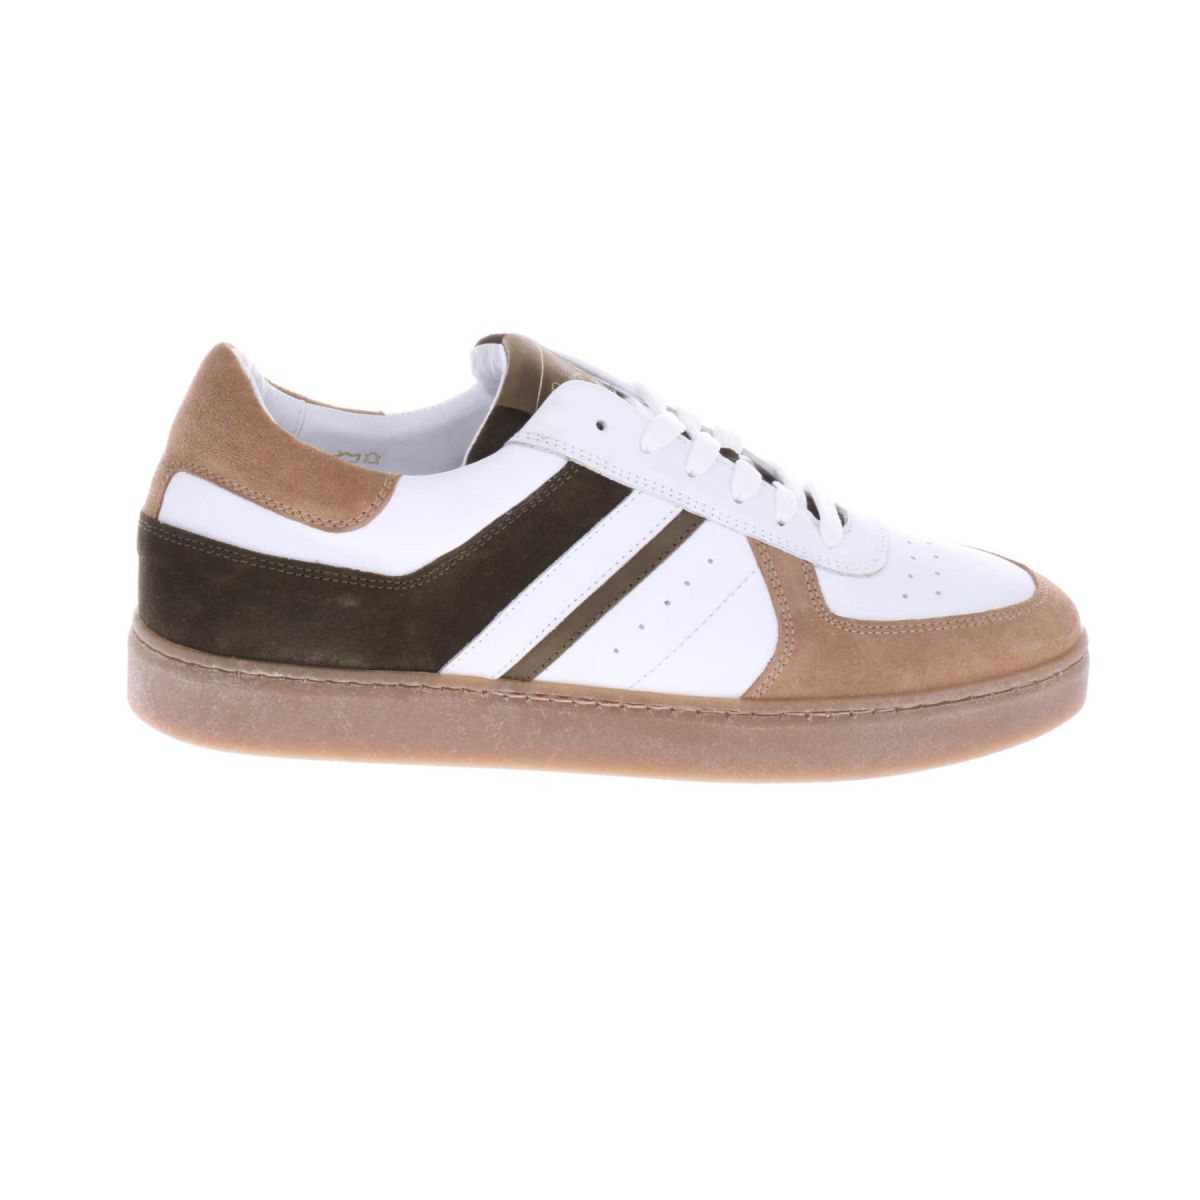 Mister Jackson M1933 Sneakers Wit Bruin